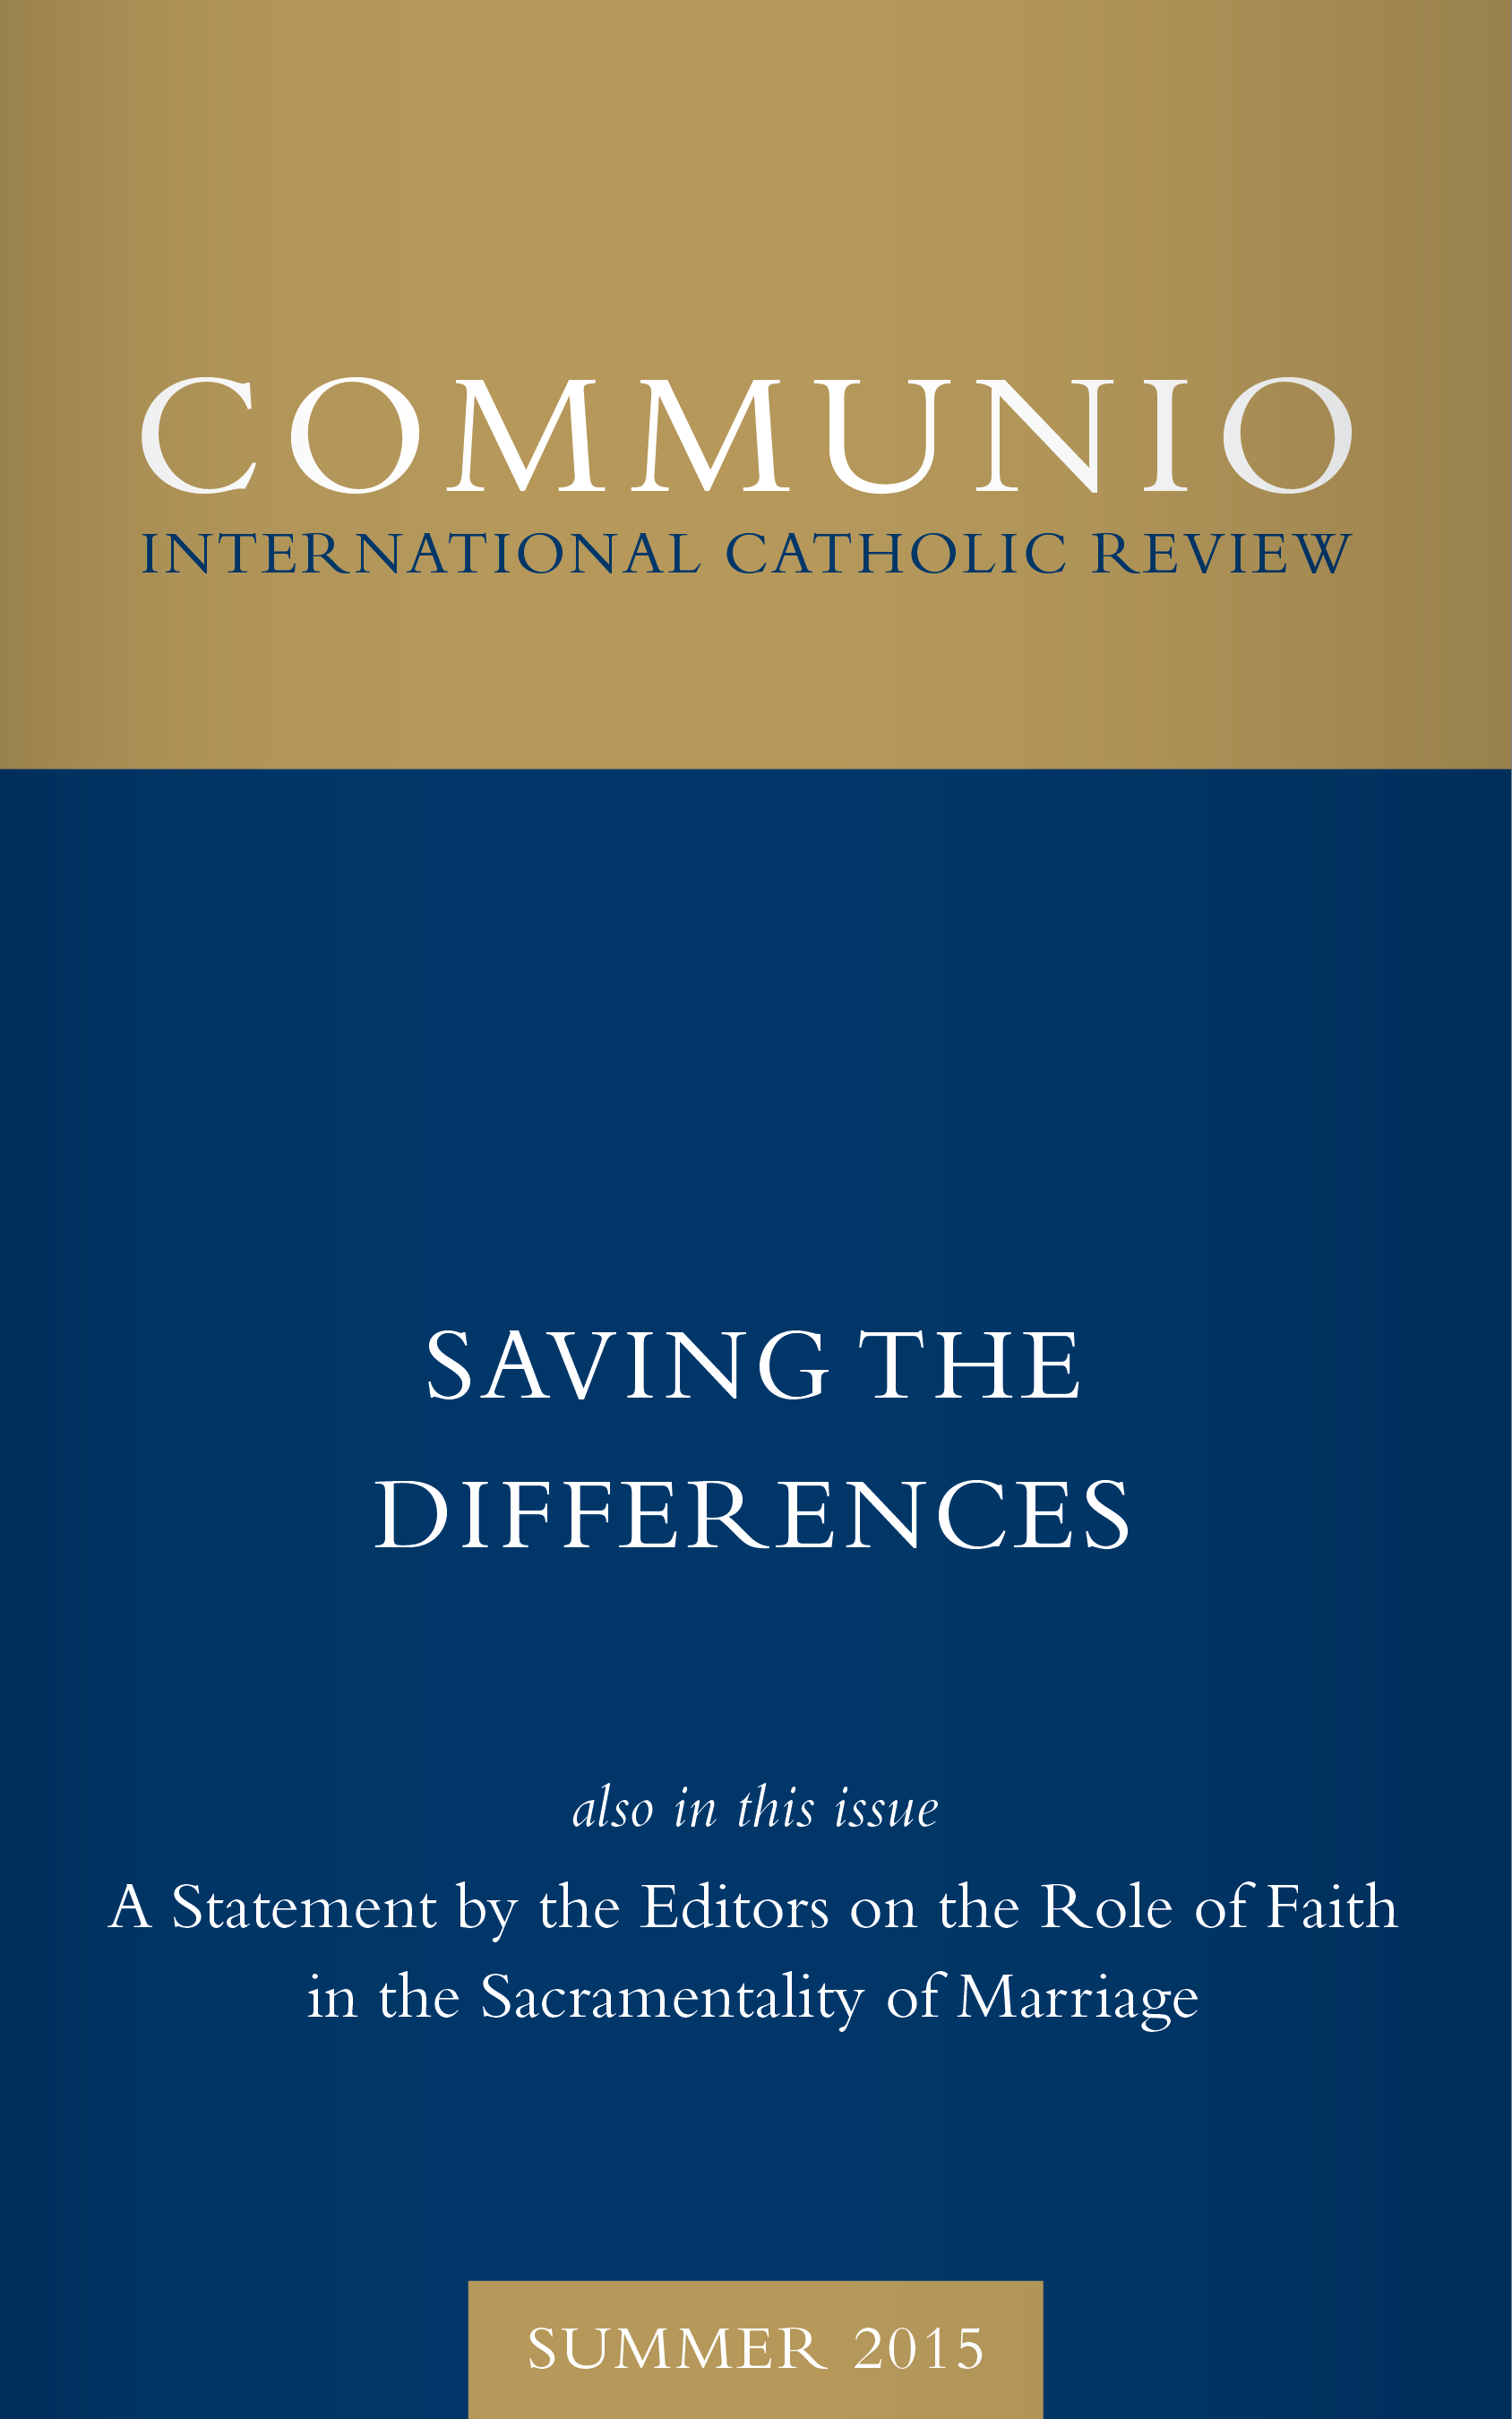 Communio - Summer 2015 - Saving the Differences